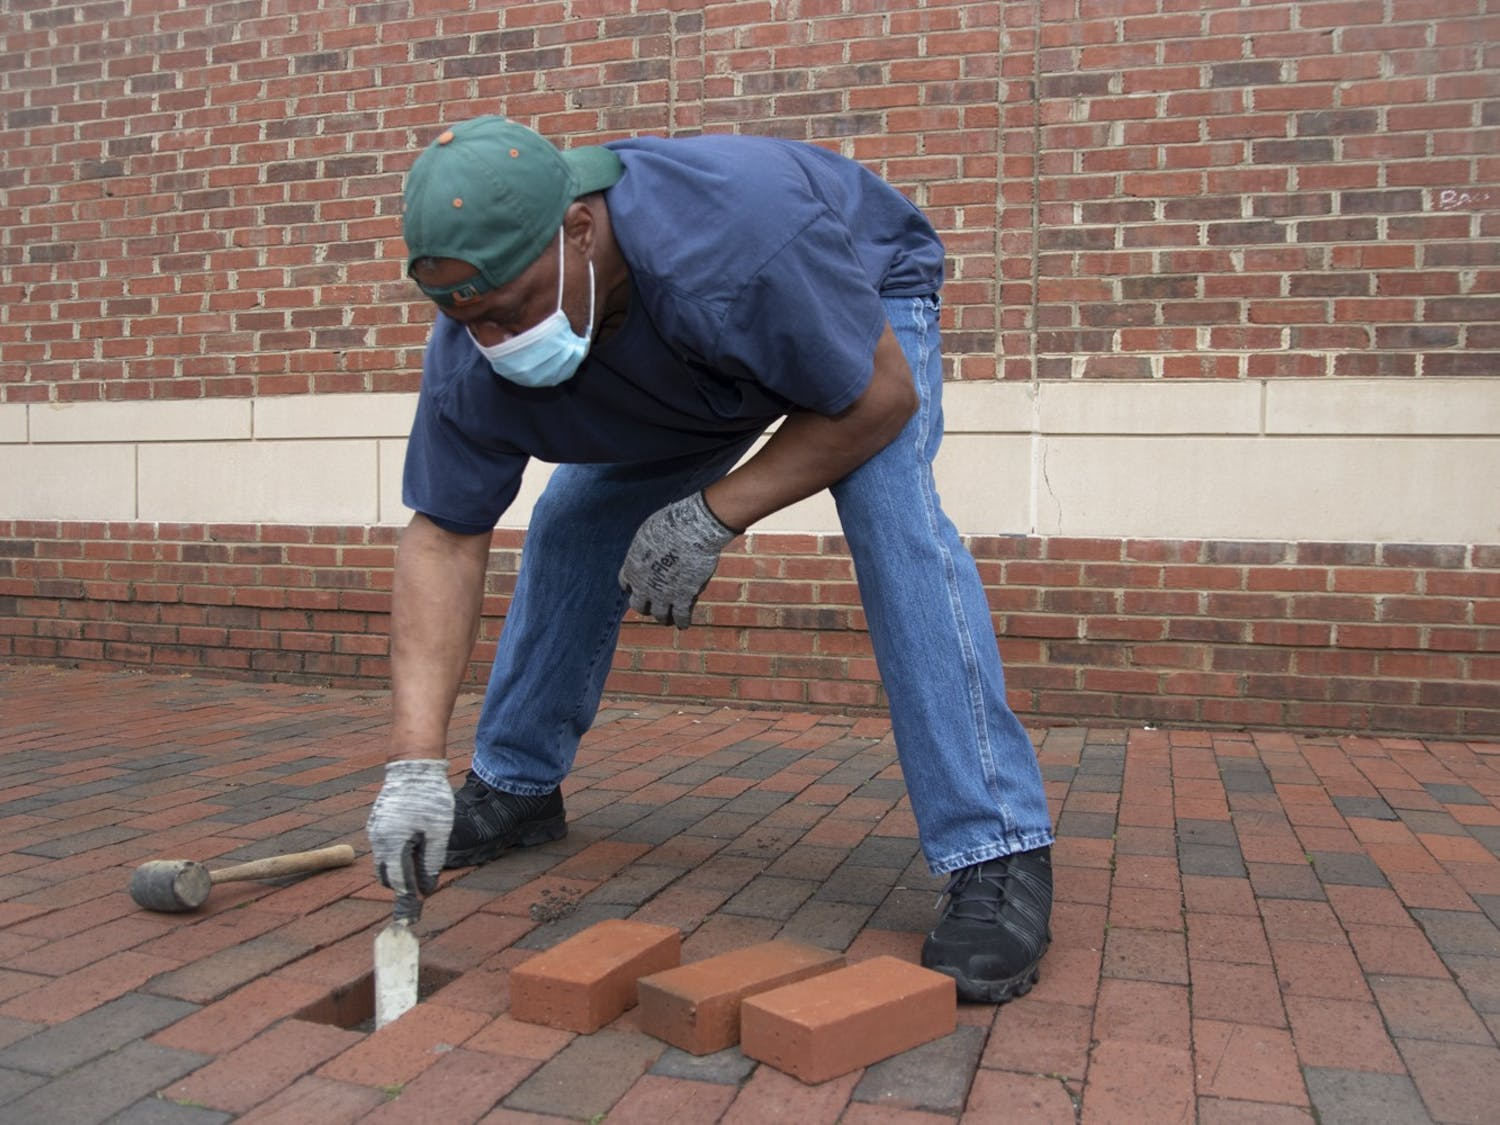 UNC faculty member Walter Thompson fills in missing bricks next to Rams Head Recreation Center on Friday, Mar. 26, 2021. Thompson spends every weekday searching for missing bricks on campus to replace them.